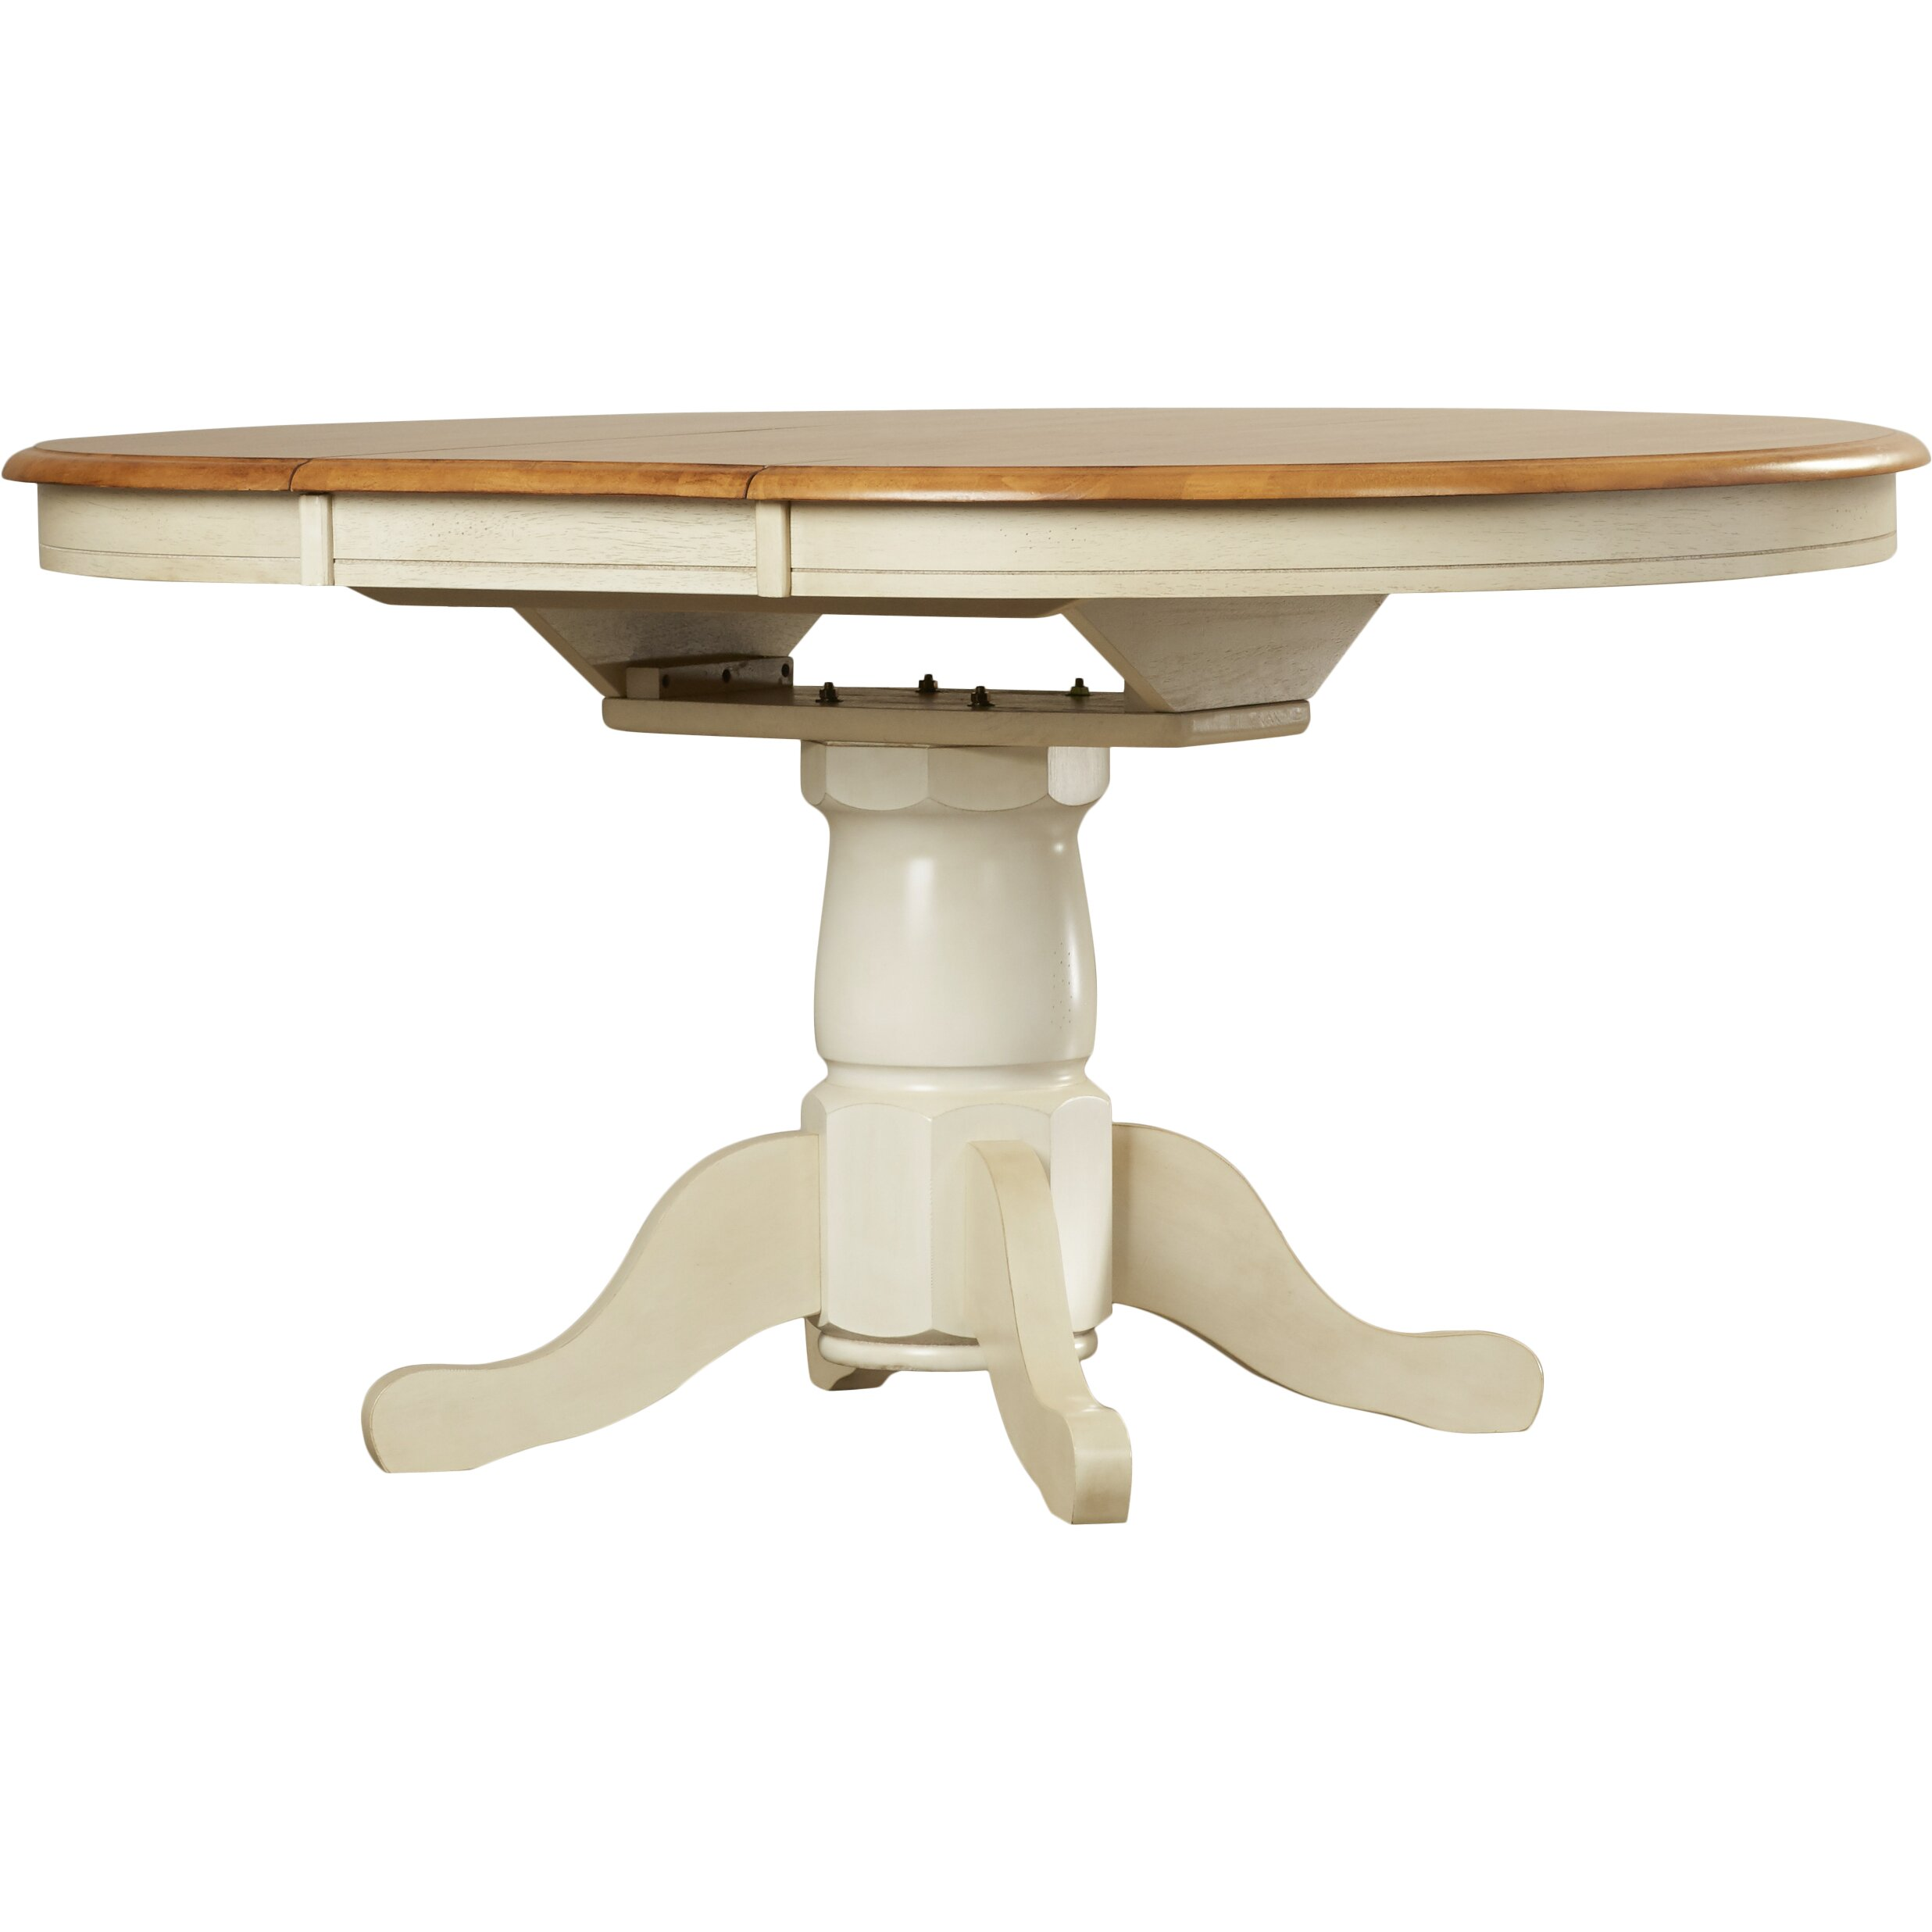 Loon Peak Wiggins Extendable Dining Table amp Reviews Wayfair : Wiggins Extendable Dining Table LOON2185 from www.wayfair.com size 2473 x 2473 jpeg 278kB